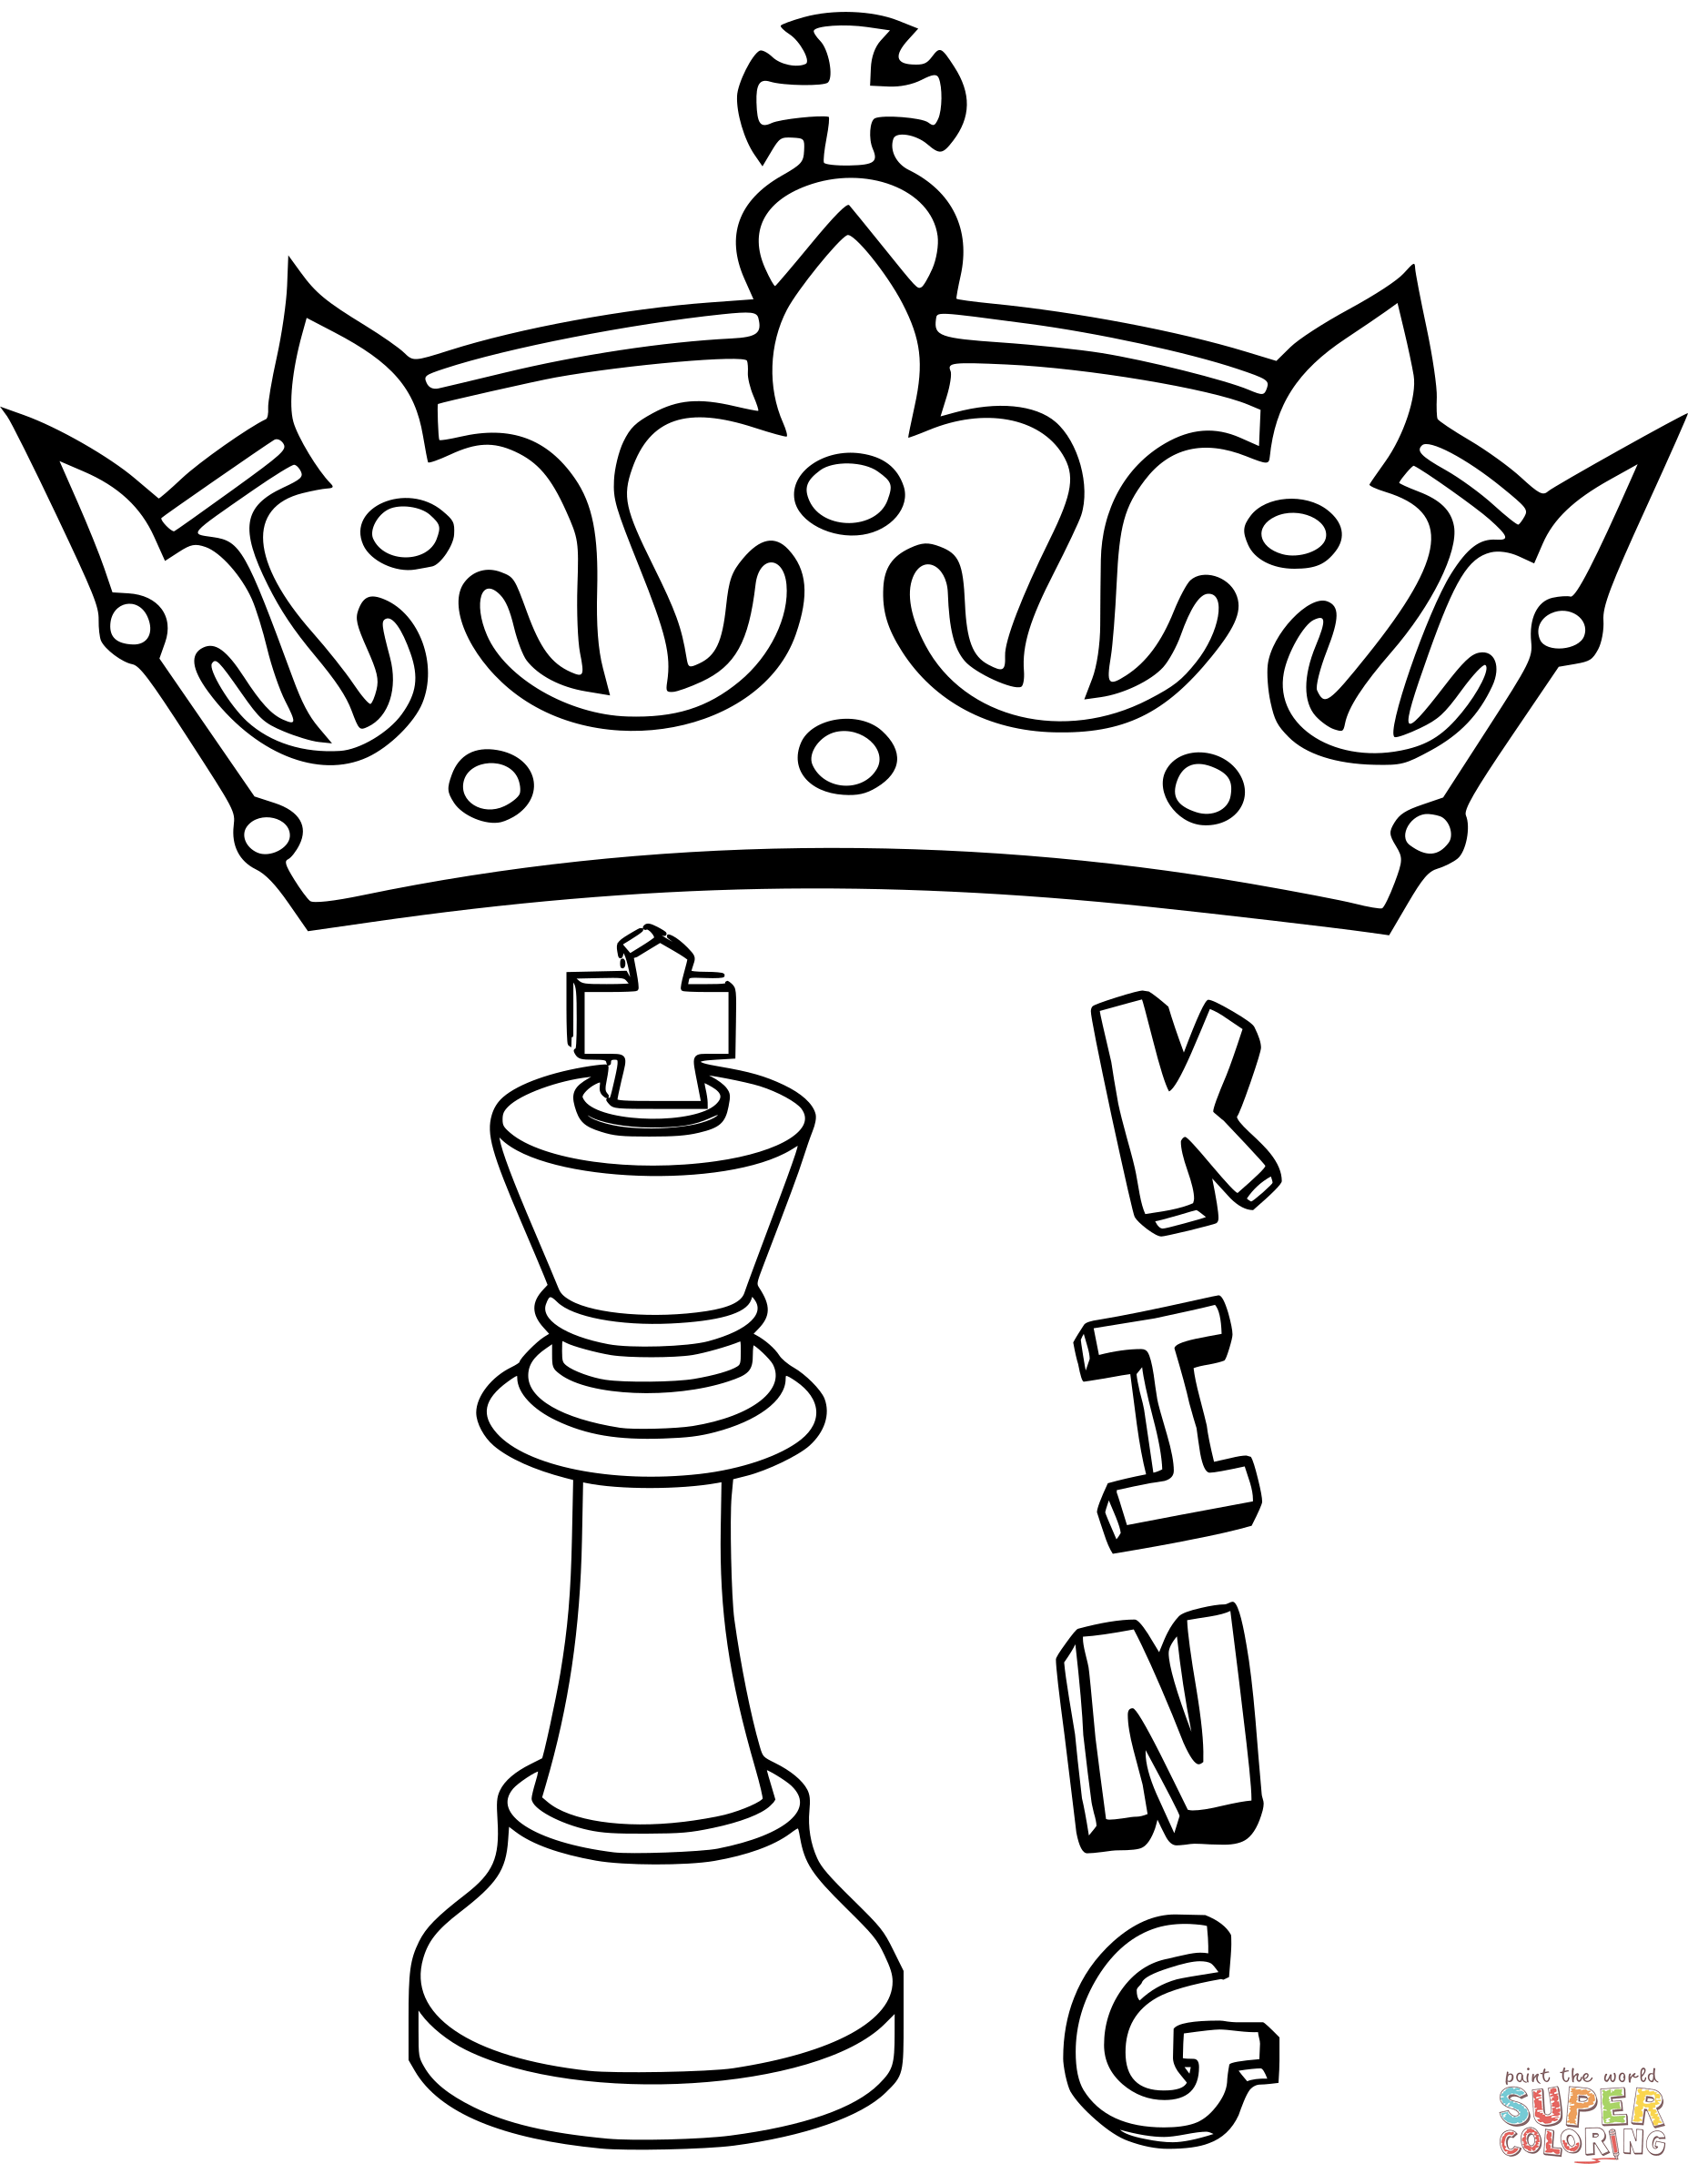 4 King Chess Piece Coloring Page Png 1855 2400 King Chess Piece Coloring Pages Chess King